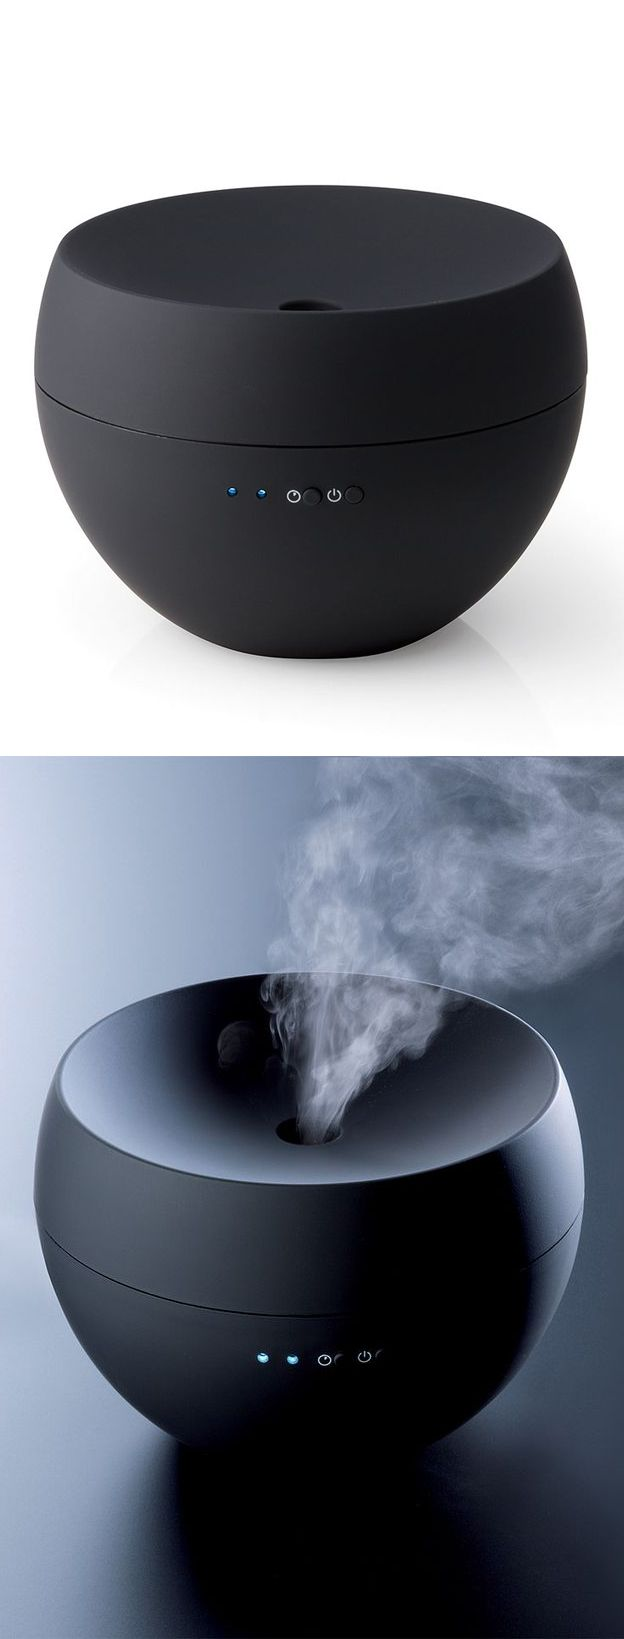 Black Jasmine Aroma Diffuser // the ultra-sonic technology blends essential oil and water together to create a fine mist that fills the room for up to 24 hours #product_design